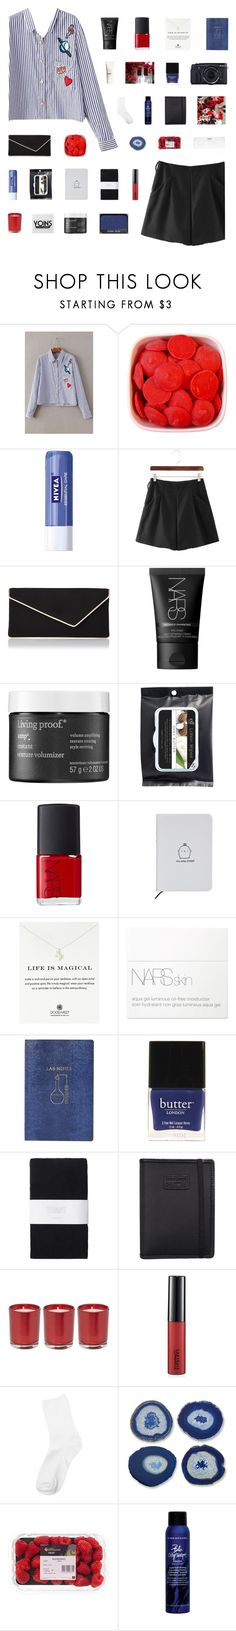 """""""YOINS // EMBRASSE-MOI"""" by gintare-13 ❤ liked on Polyvore featuring Nivea, L.K.Bennett, NARS Cosmetics, Living Proof, Dogeared, Topshop, Butter London, Toast, Fujifilm and Nava"""